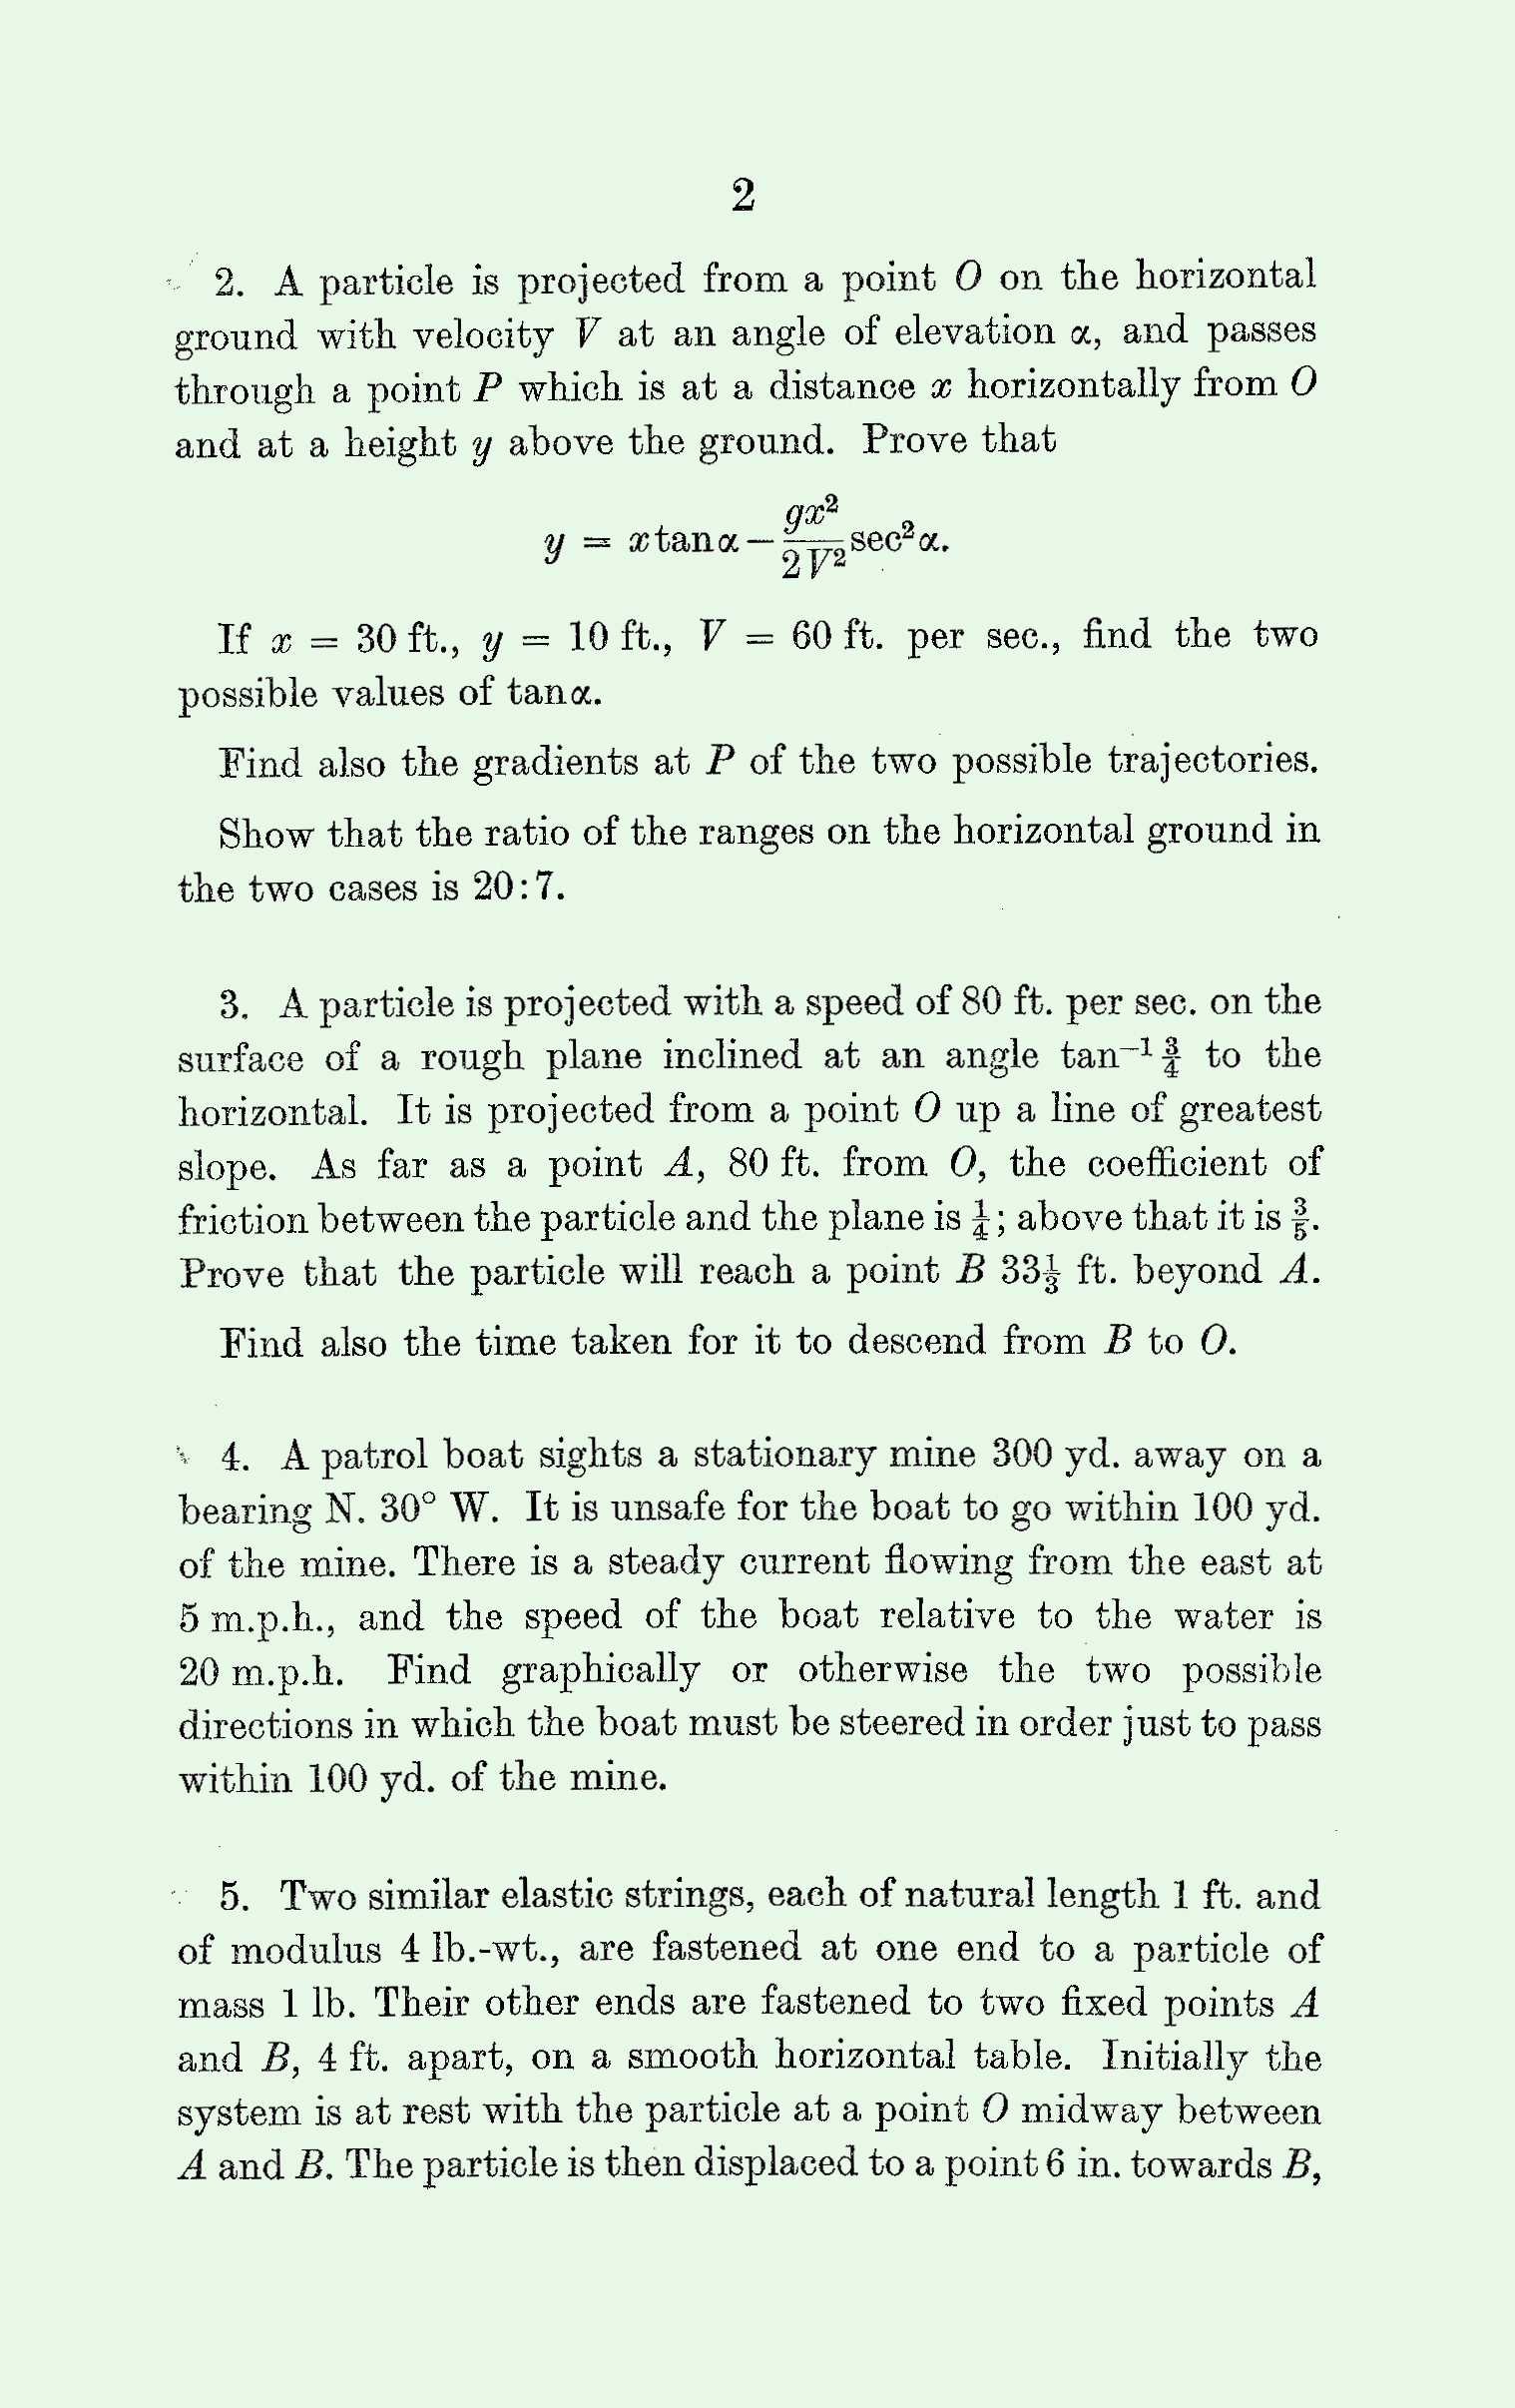 1963 Applied Mathematics A Level & S Level Paper I page 2